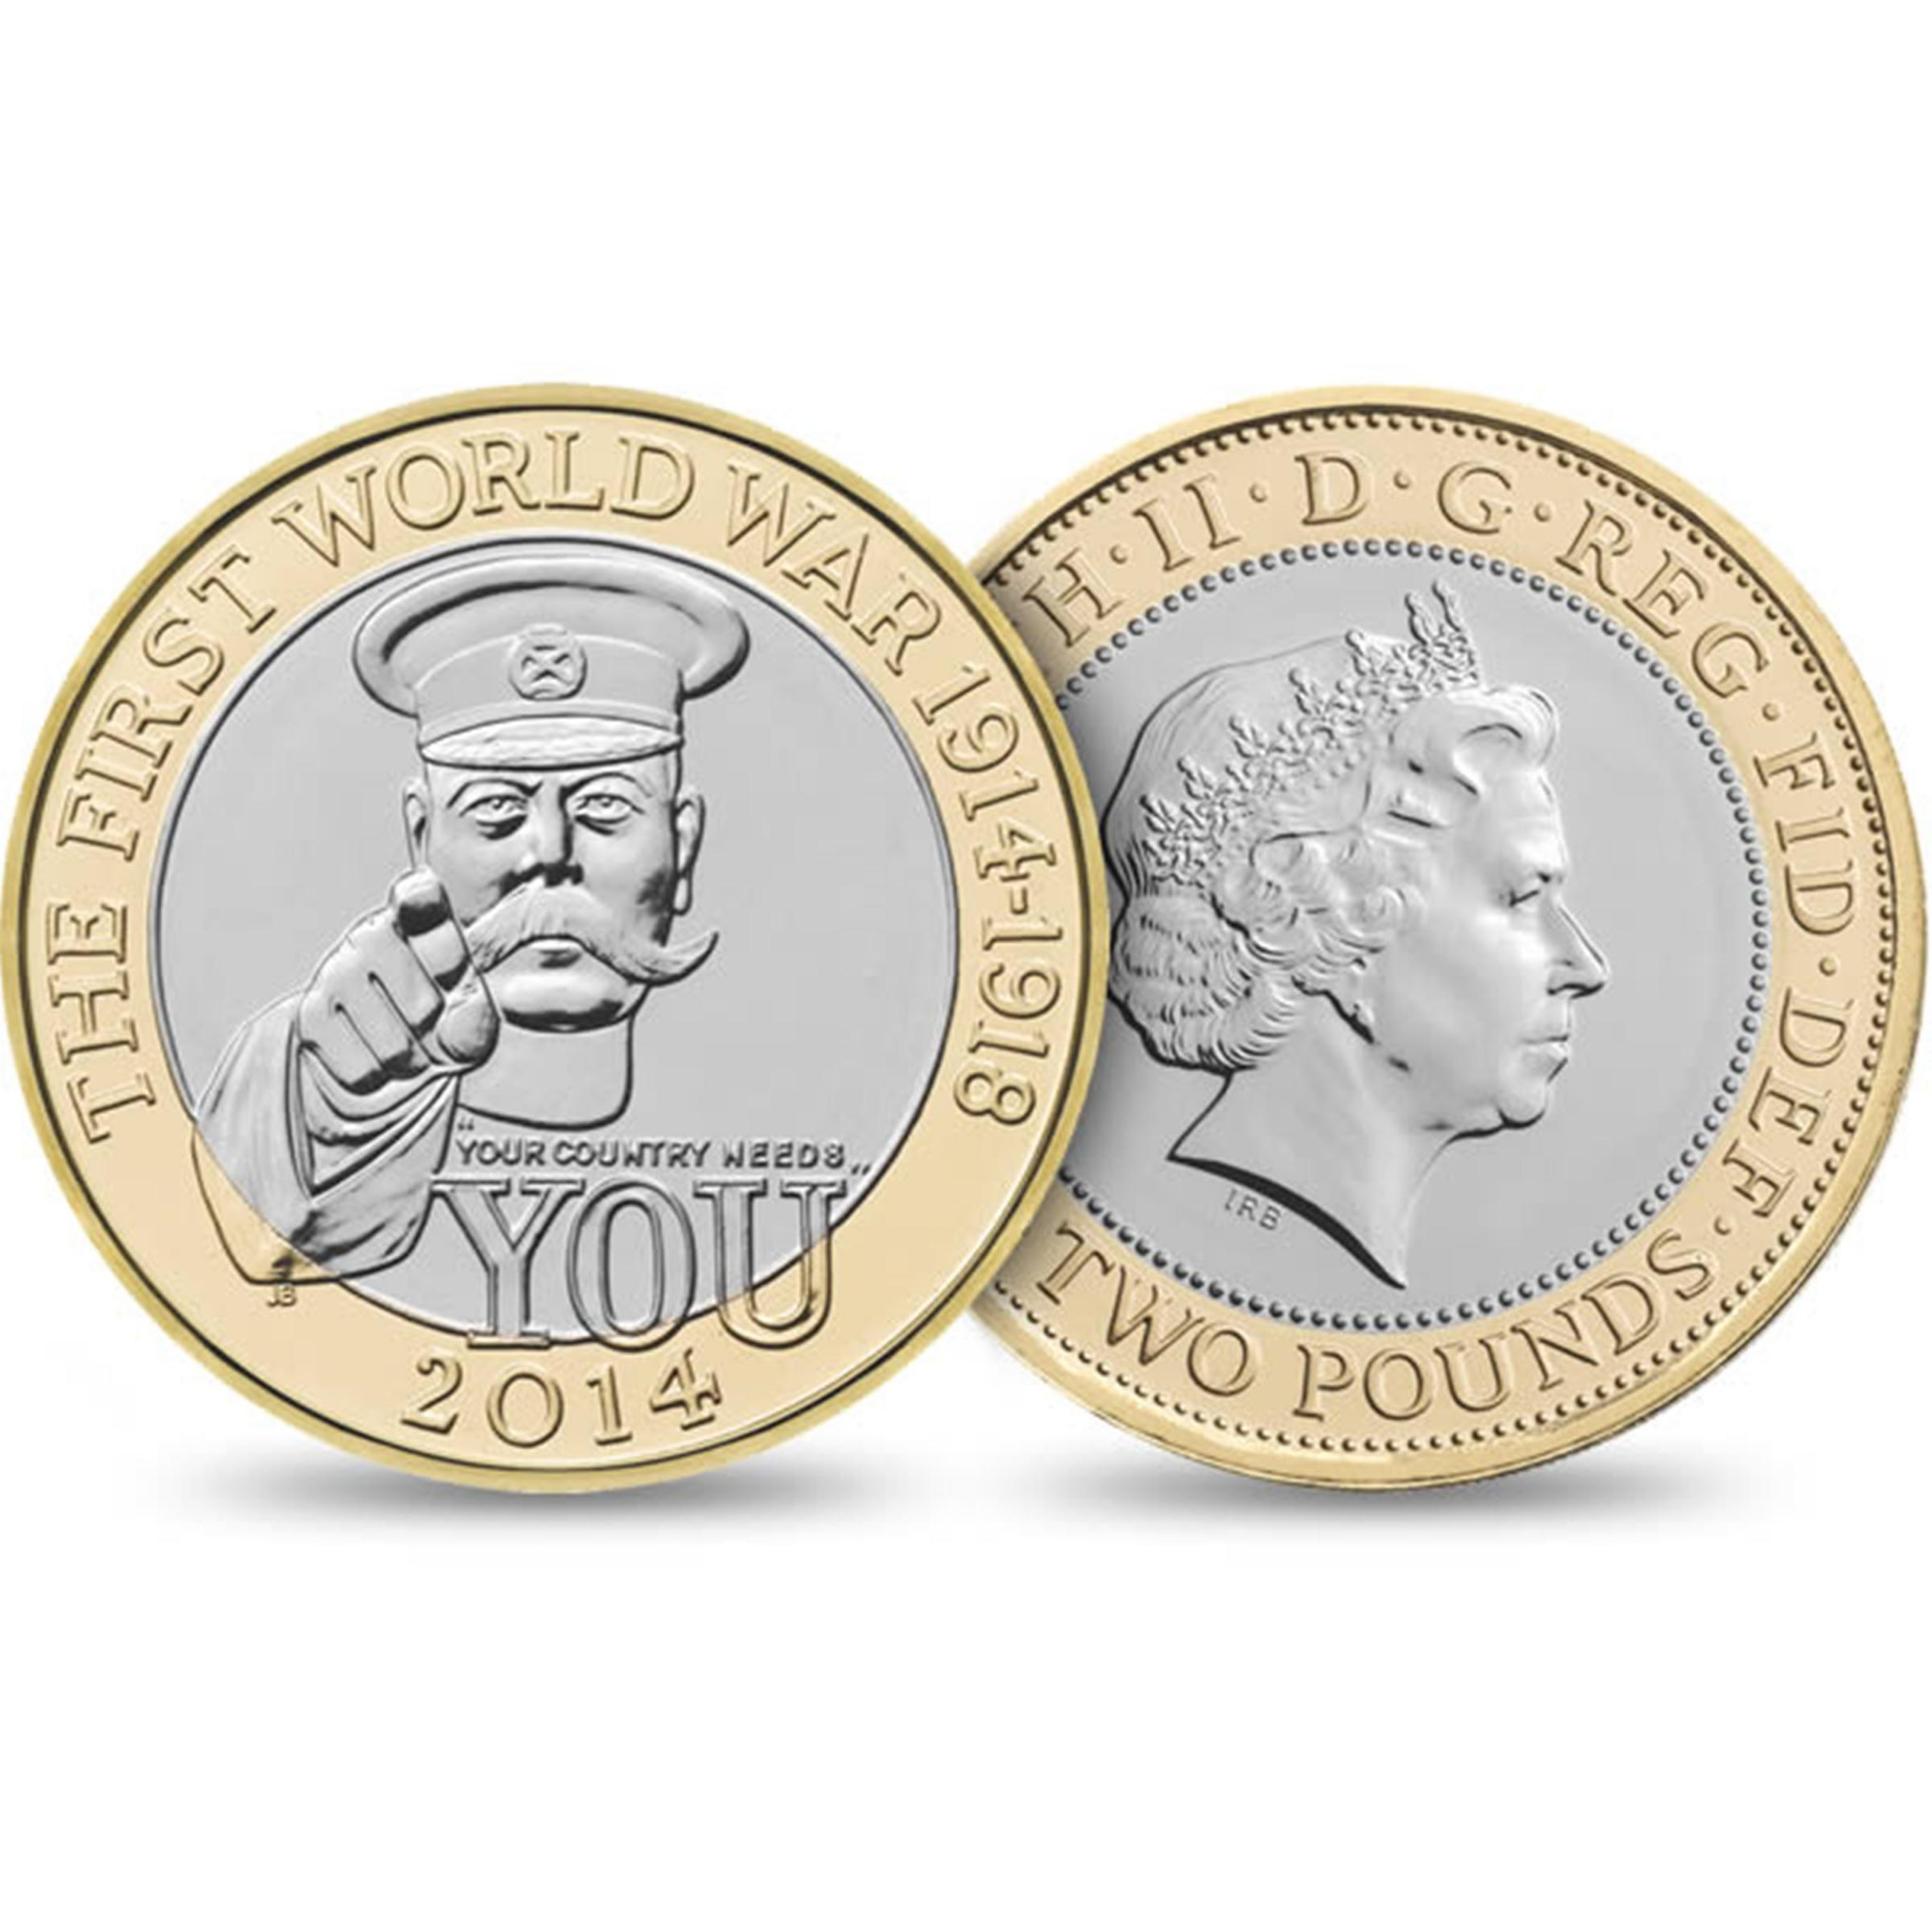 New £2 coin 'glorifies war' and does not honour WW1 dead, says Green Party leader